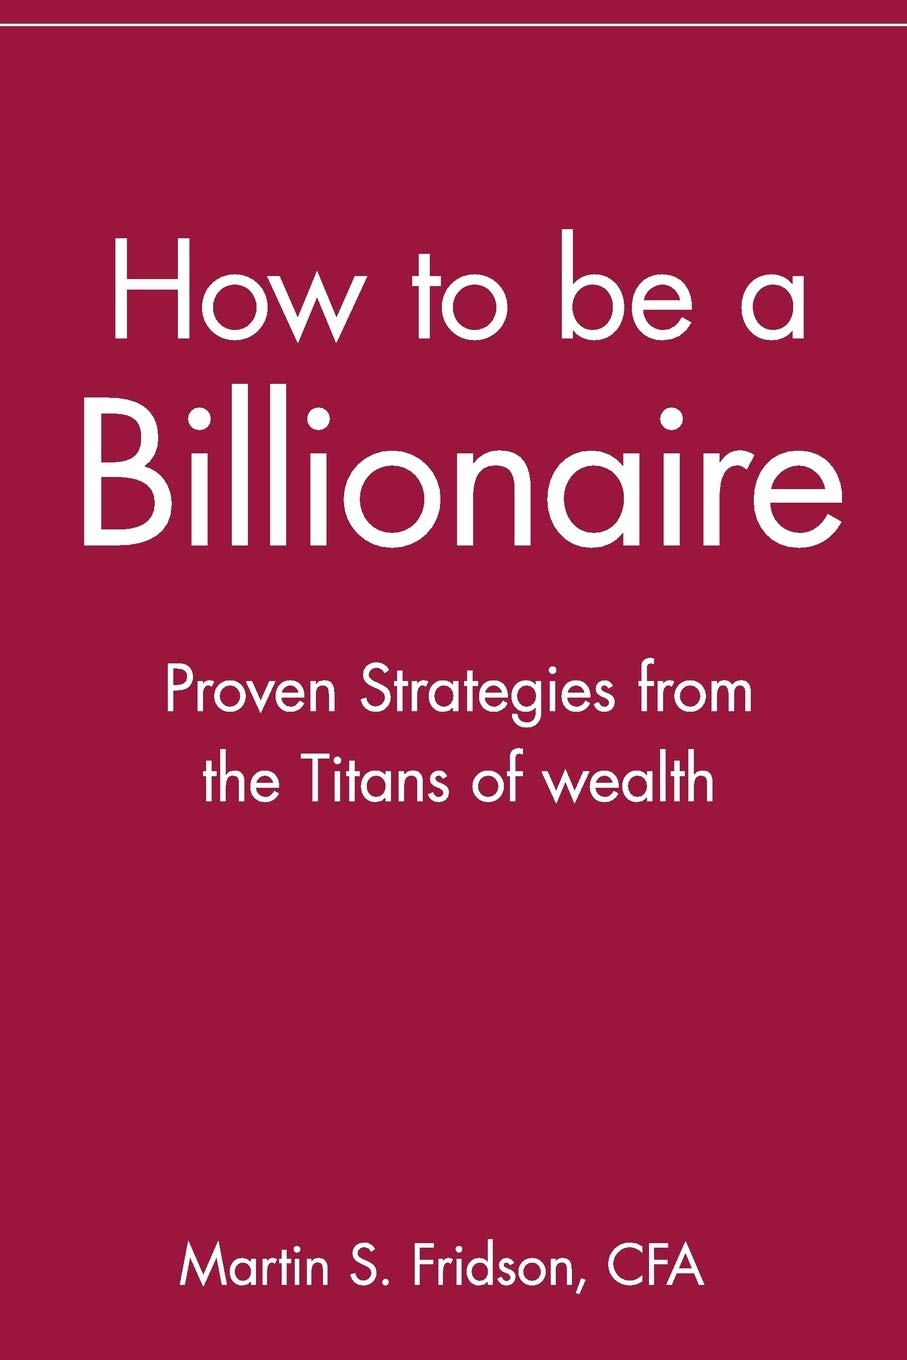 Image OfHow To Be A Billionaire: Proven Strategies From The Titans Of Wealth